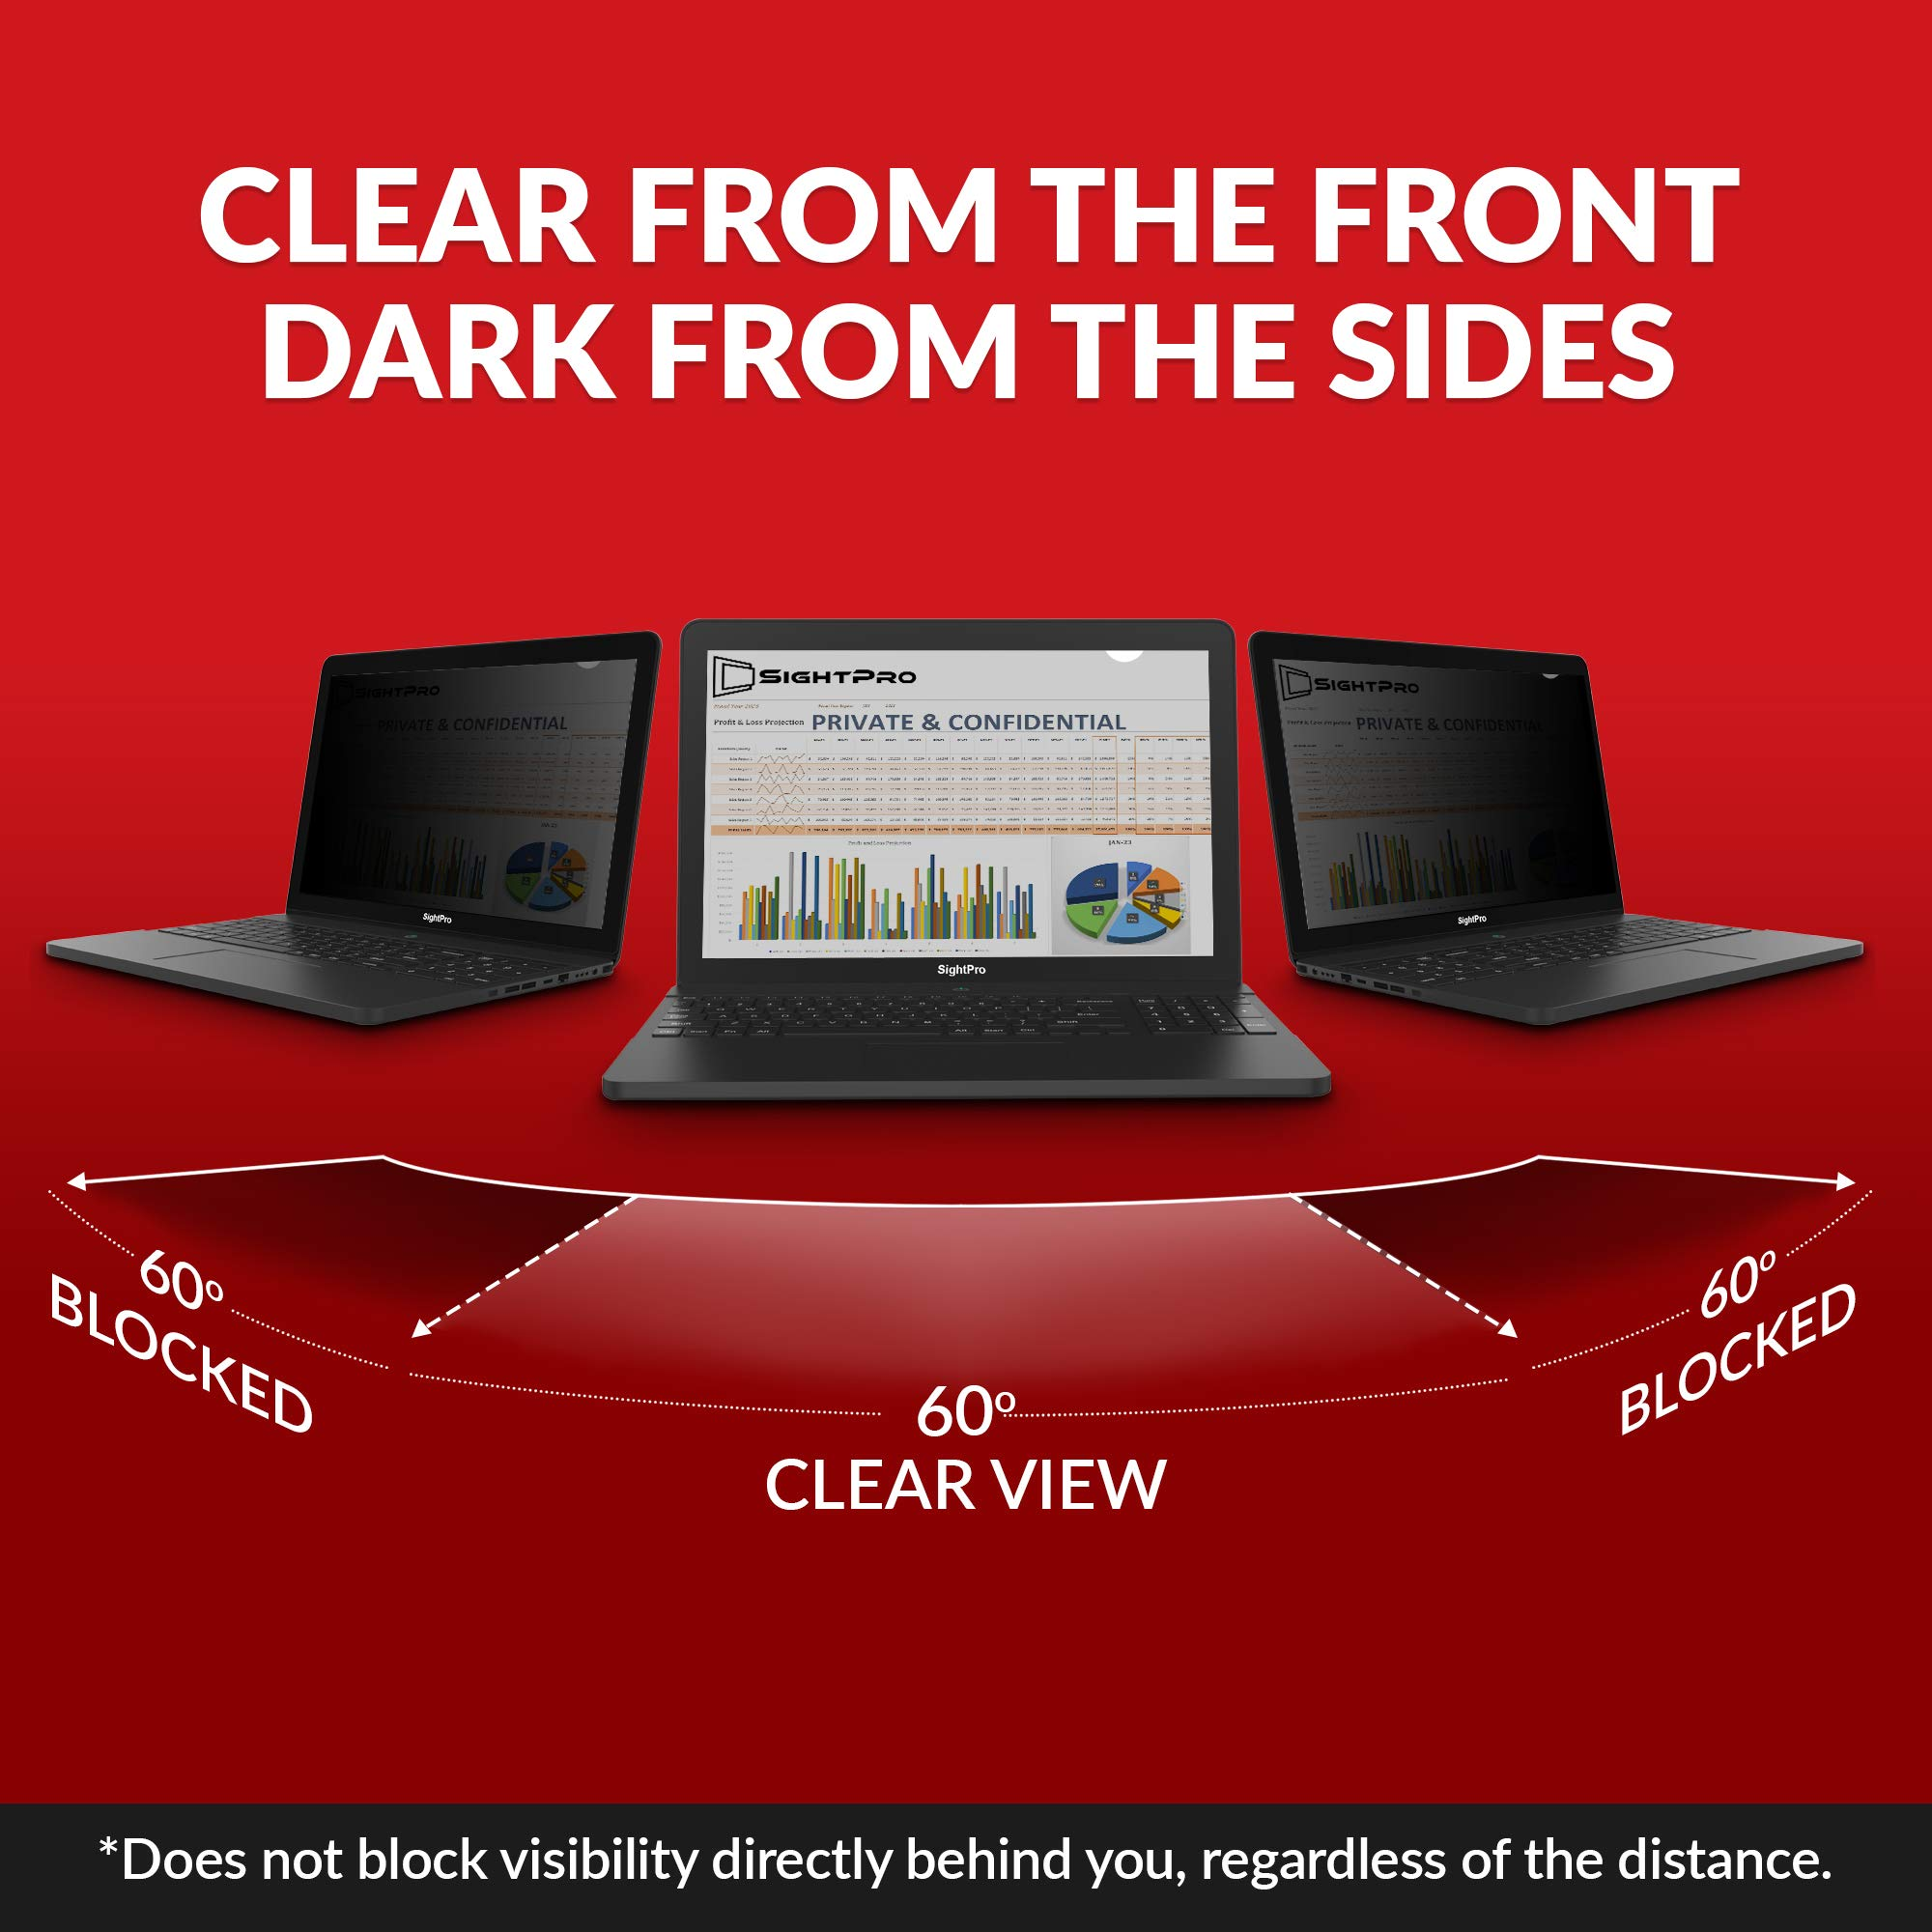 SightPro 12.5 inch Laptop Privacy Screen Filter (Black) - Privacy Protector for 12.5'' 16:9 Widescreen Computer Monitor by SightPro (Image #4)